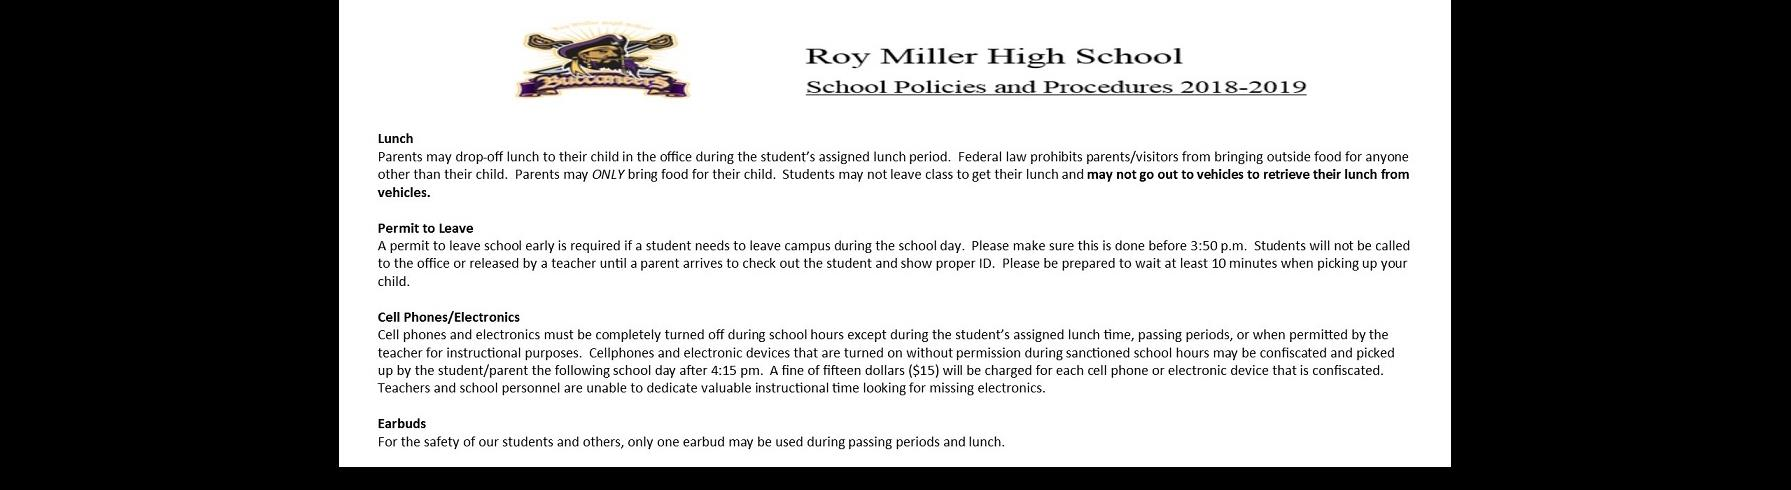 Student Policies and Procedures